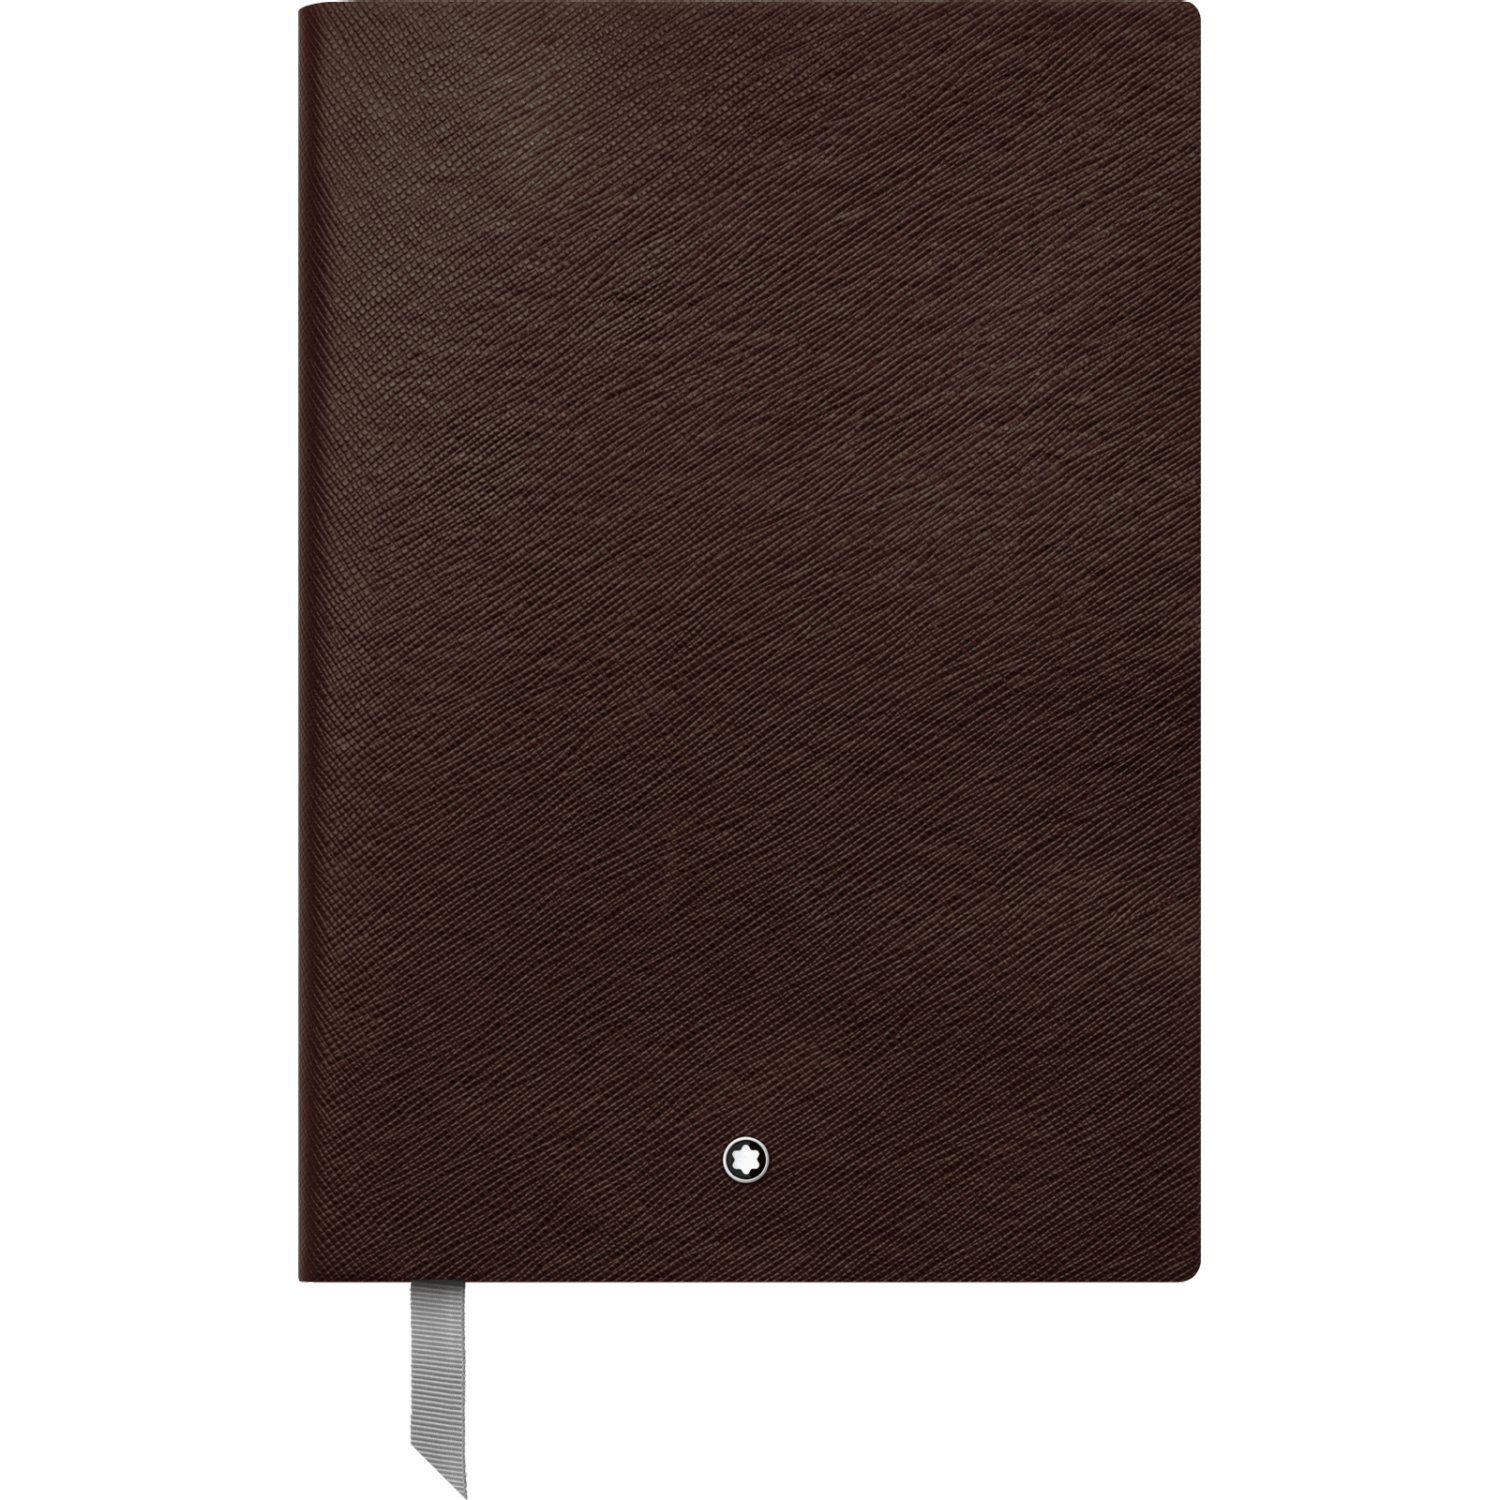 Montblanc Notebook Tobacco Lined #146 Fine Stationery 113590 - Elegant Journal with Leather Binding and Ruled Pages - 1 x (5.9 x 8.2 in.)